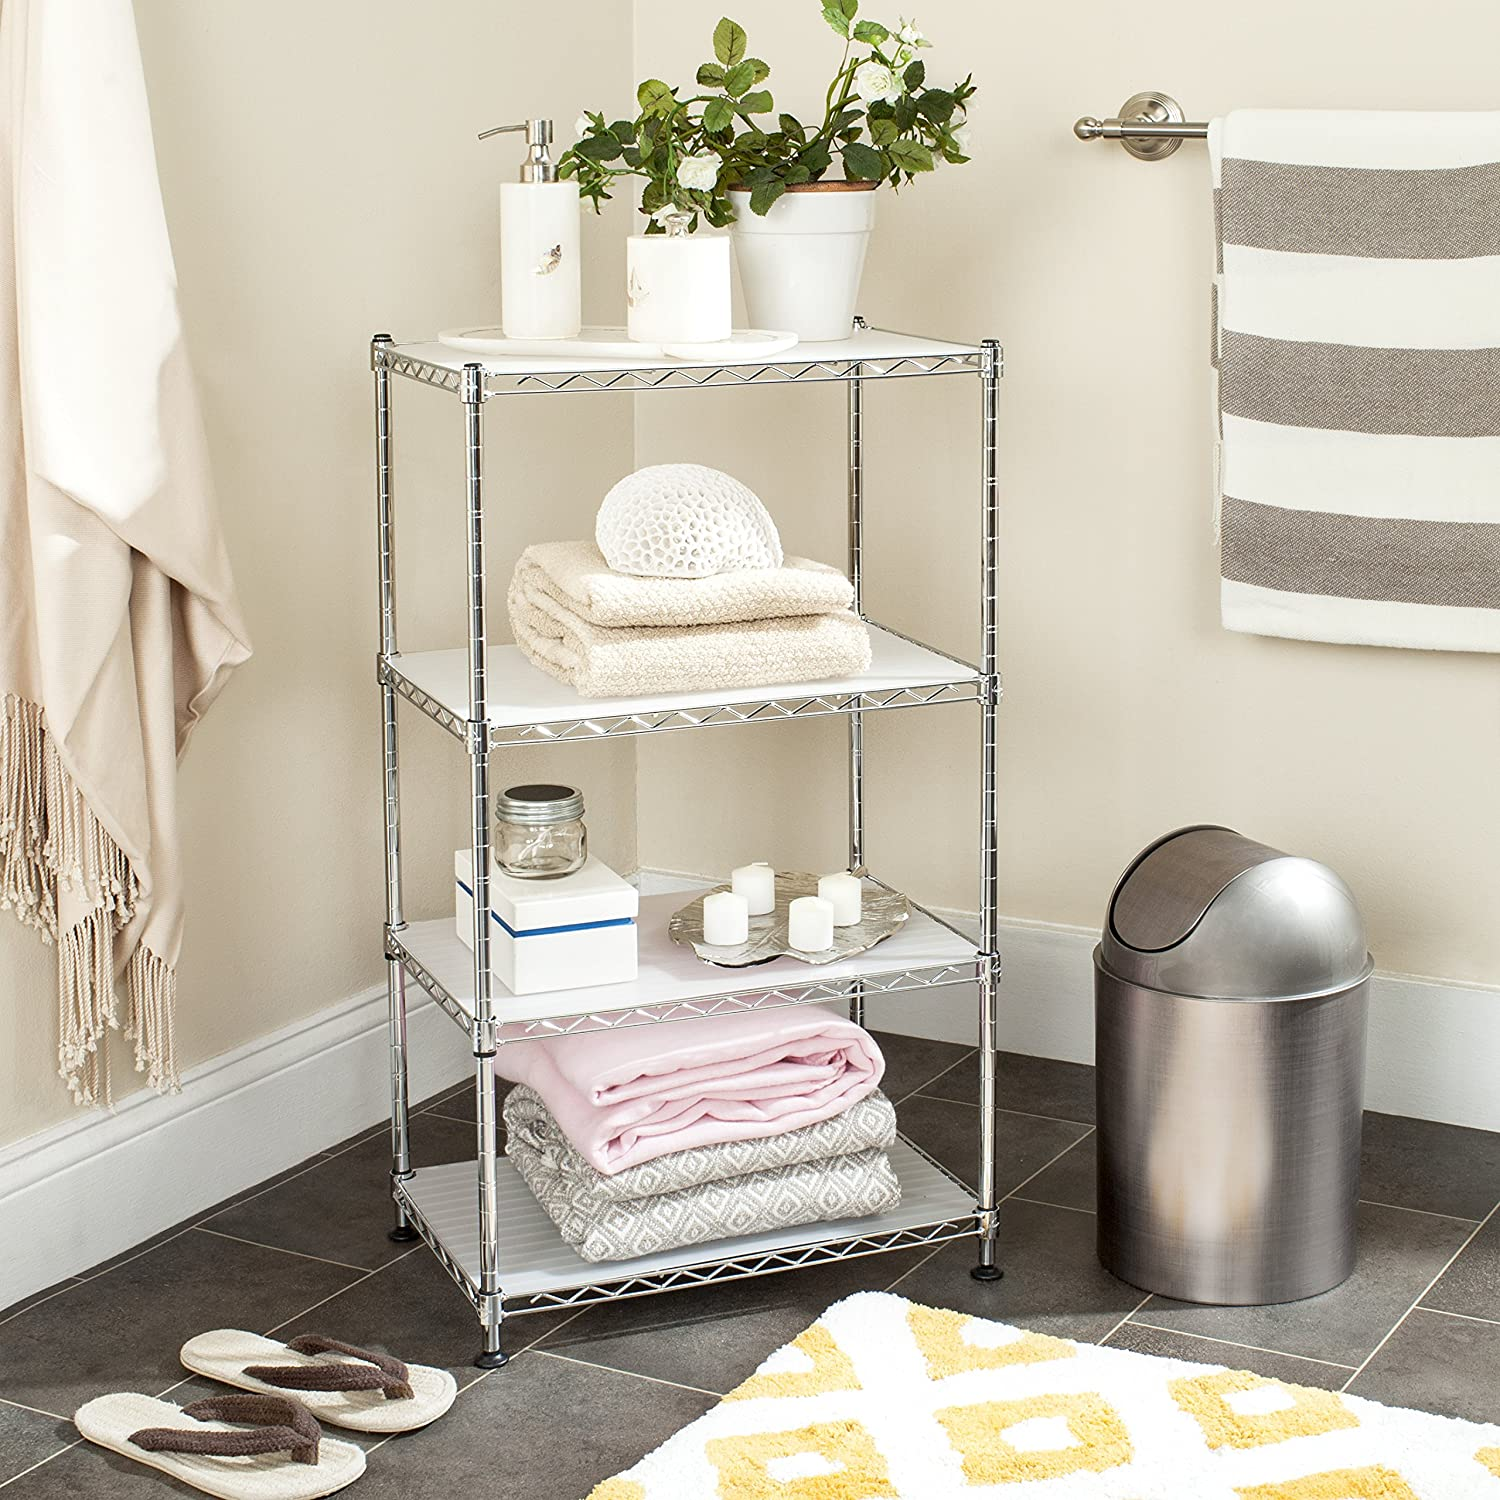 Safavieh Home Collection Jules Adjustable Premium Chrome 31.5-inch Wire Mini Rack HAC1005A